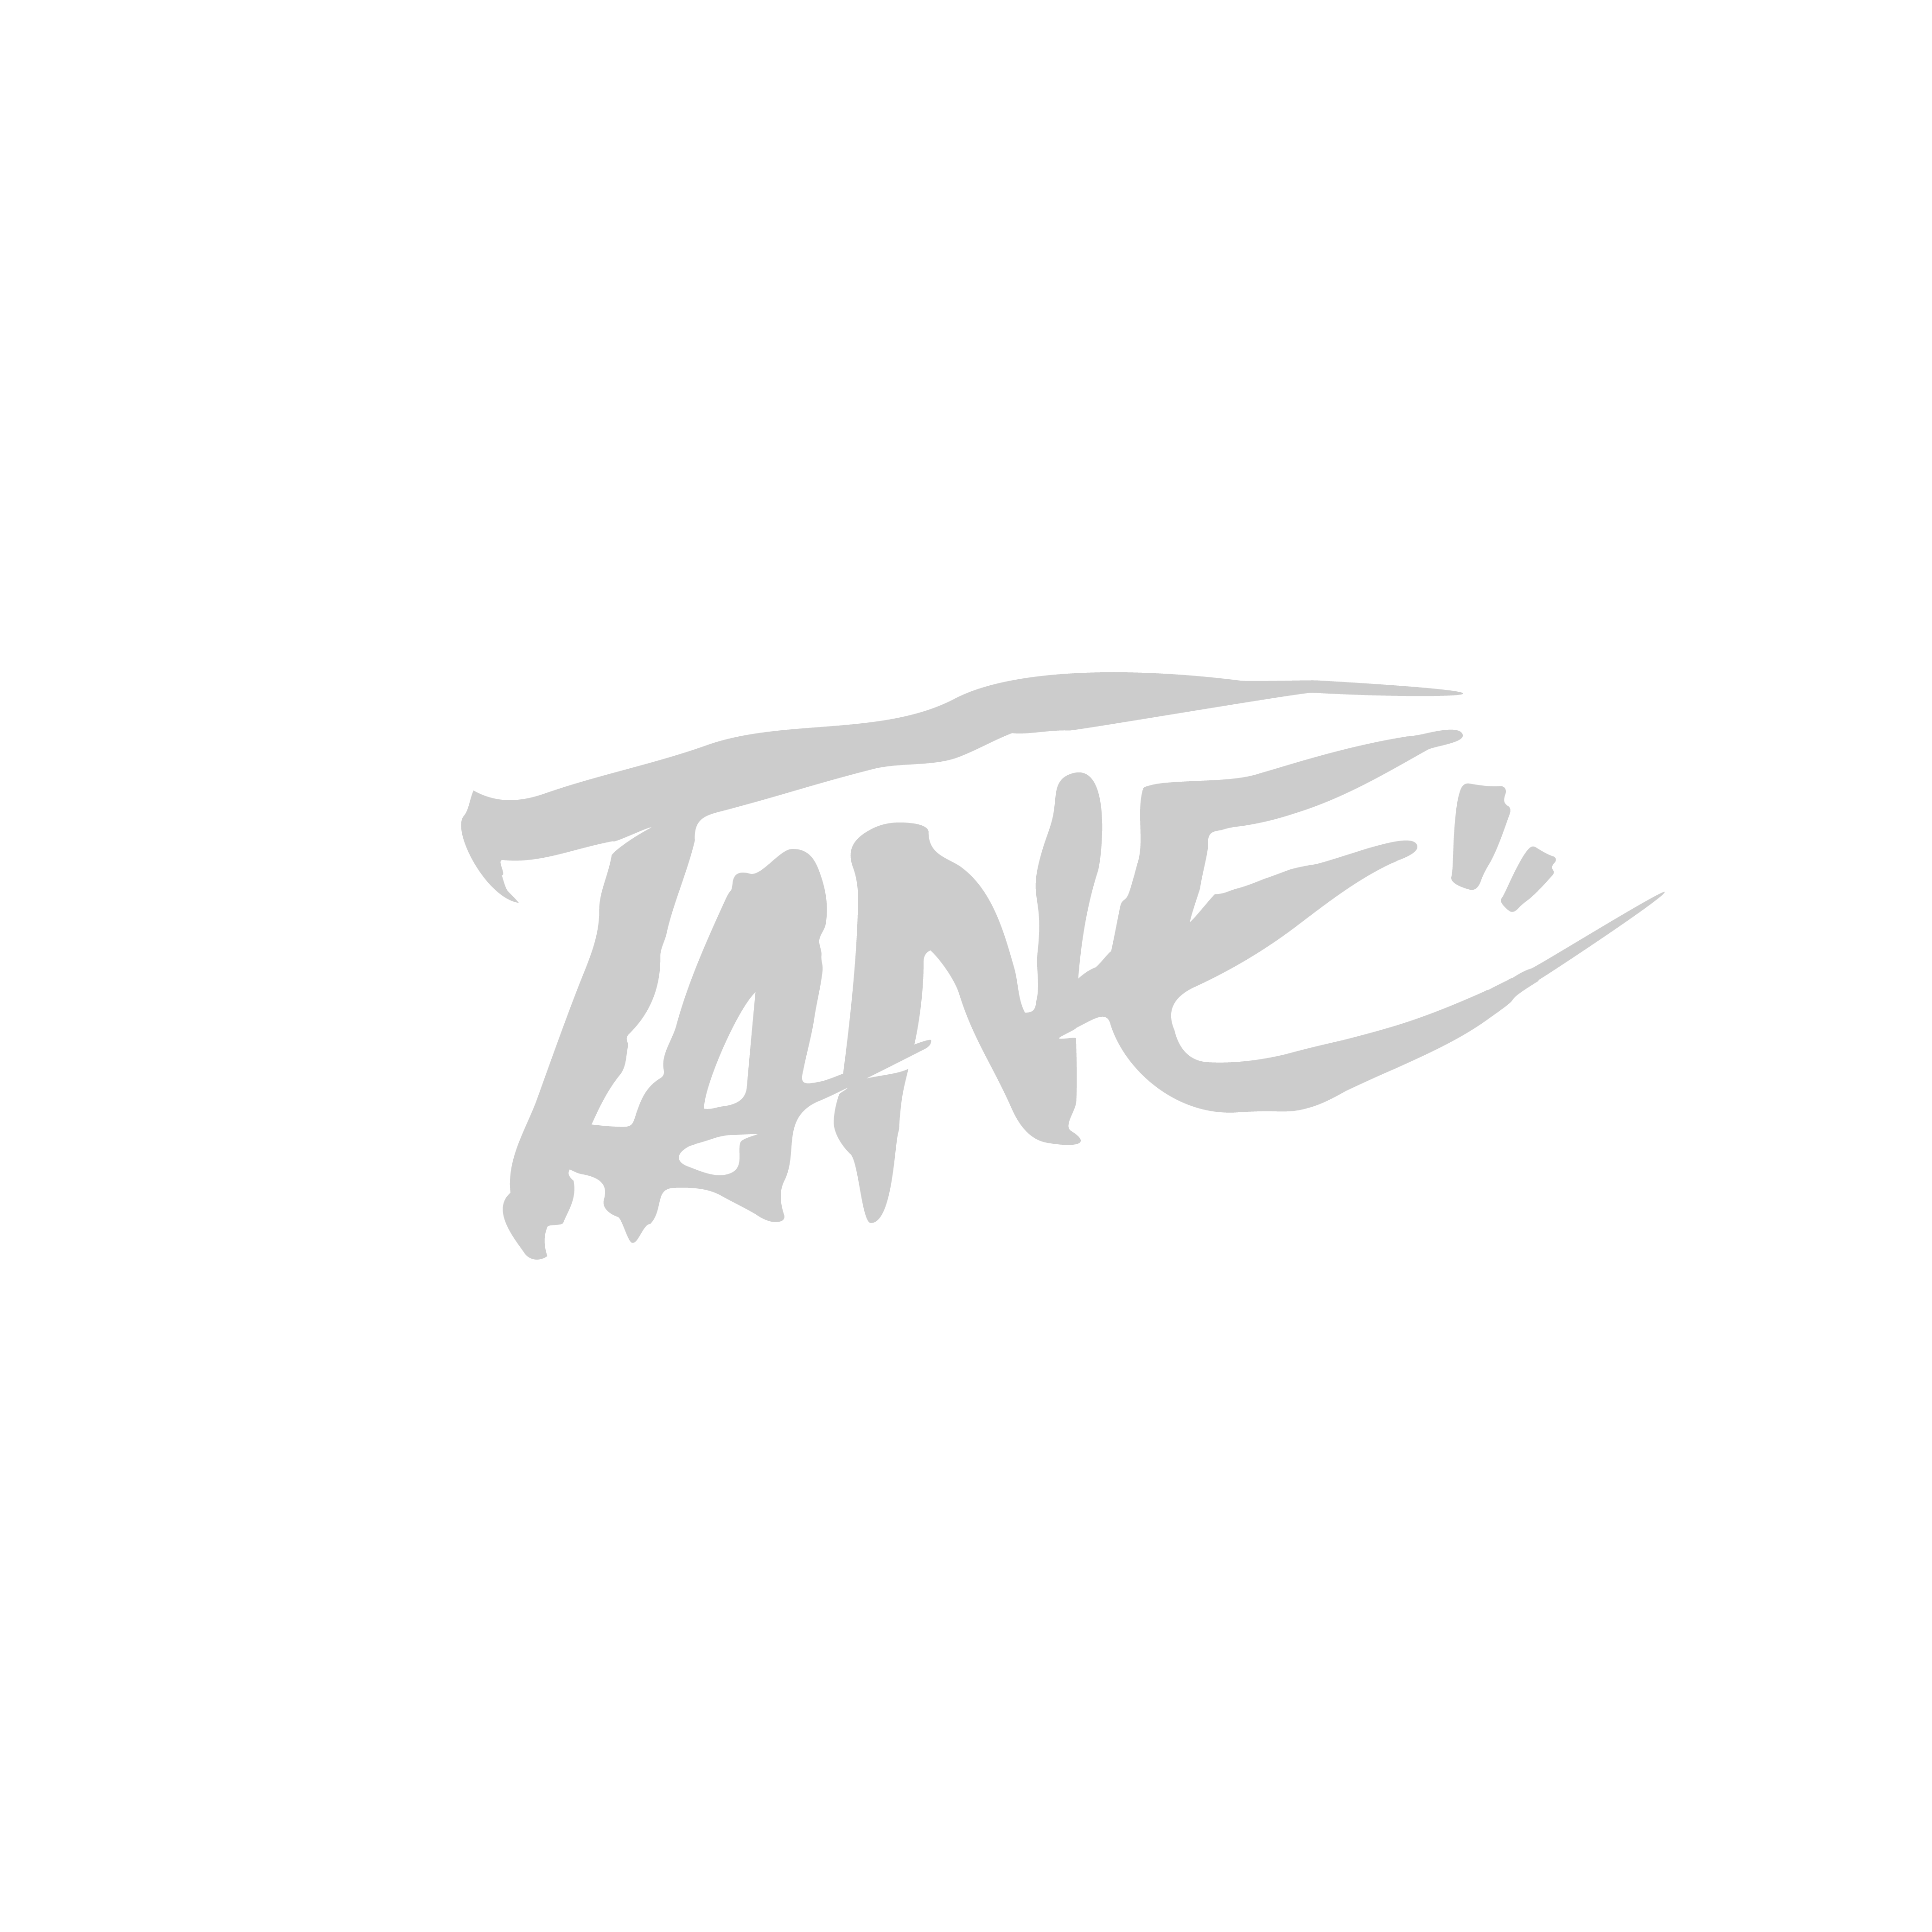 I need a logo that complements the music & vision